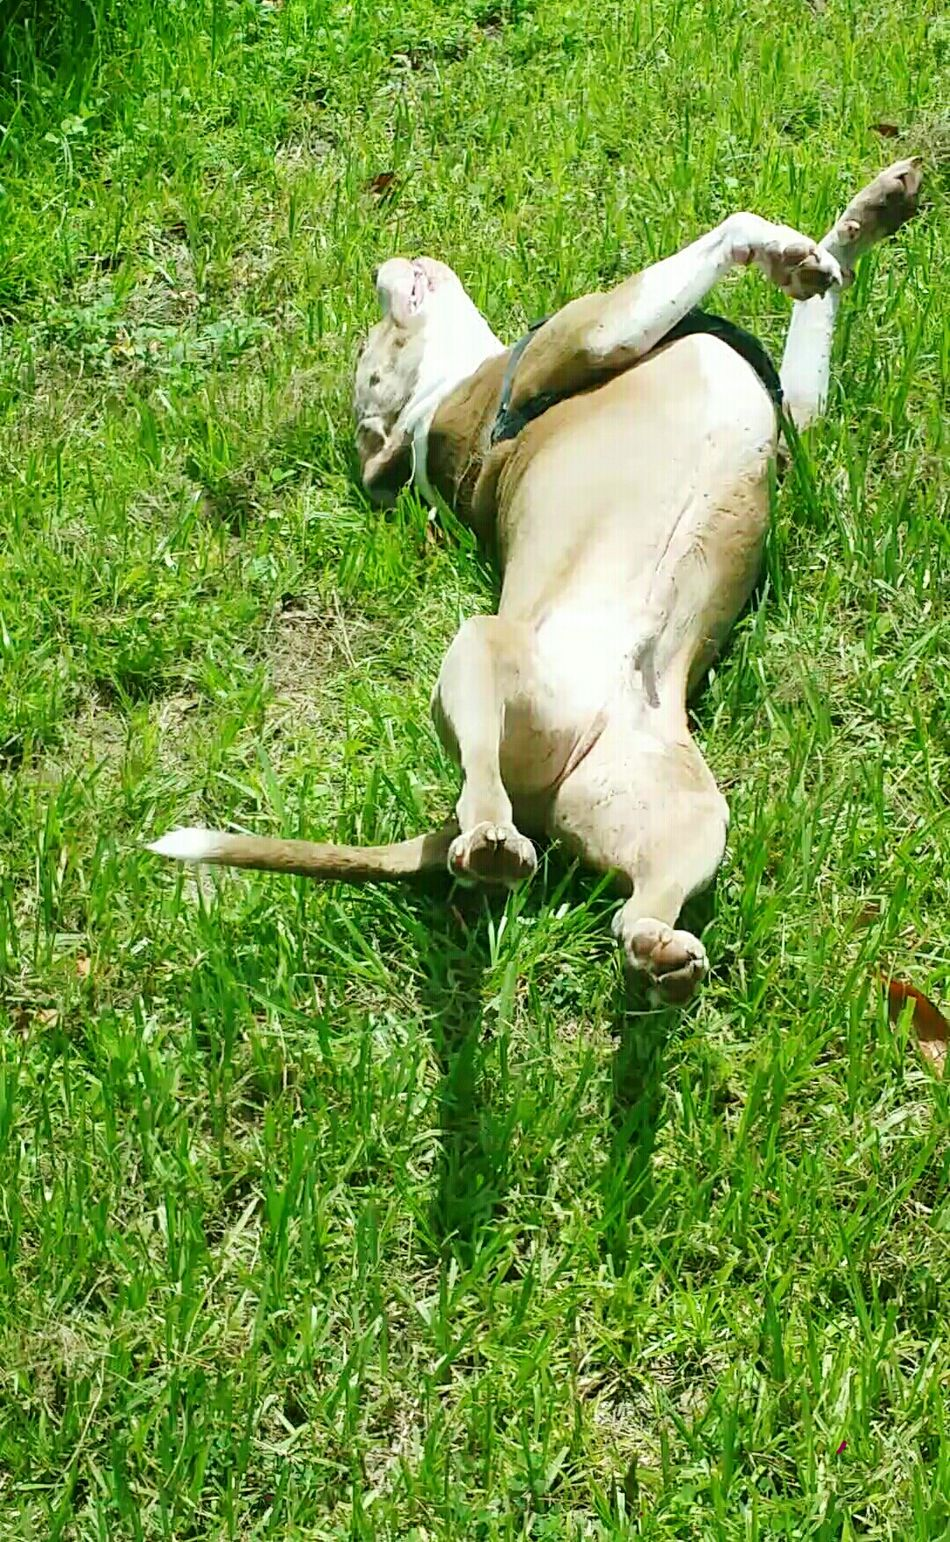 Summer Dog Escaping From The Heat Enjoying Life Happy To Be Out Side Running Around Rolling In The Grass To Keep Cool My American Stratford Terrier Buddy I Love My Dog Play Time After Days Of Rain The Week On Eyem open ediit